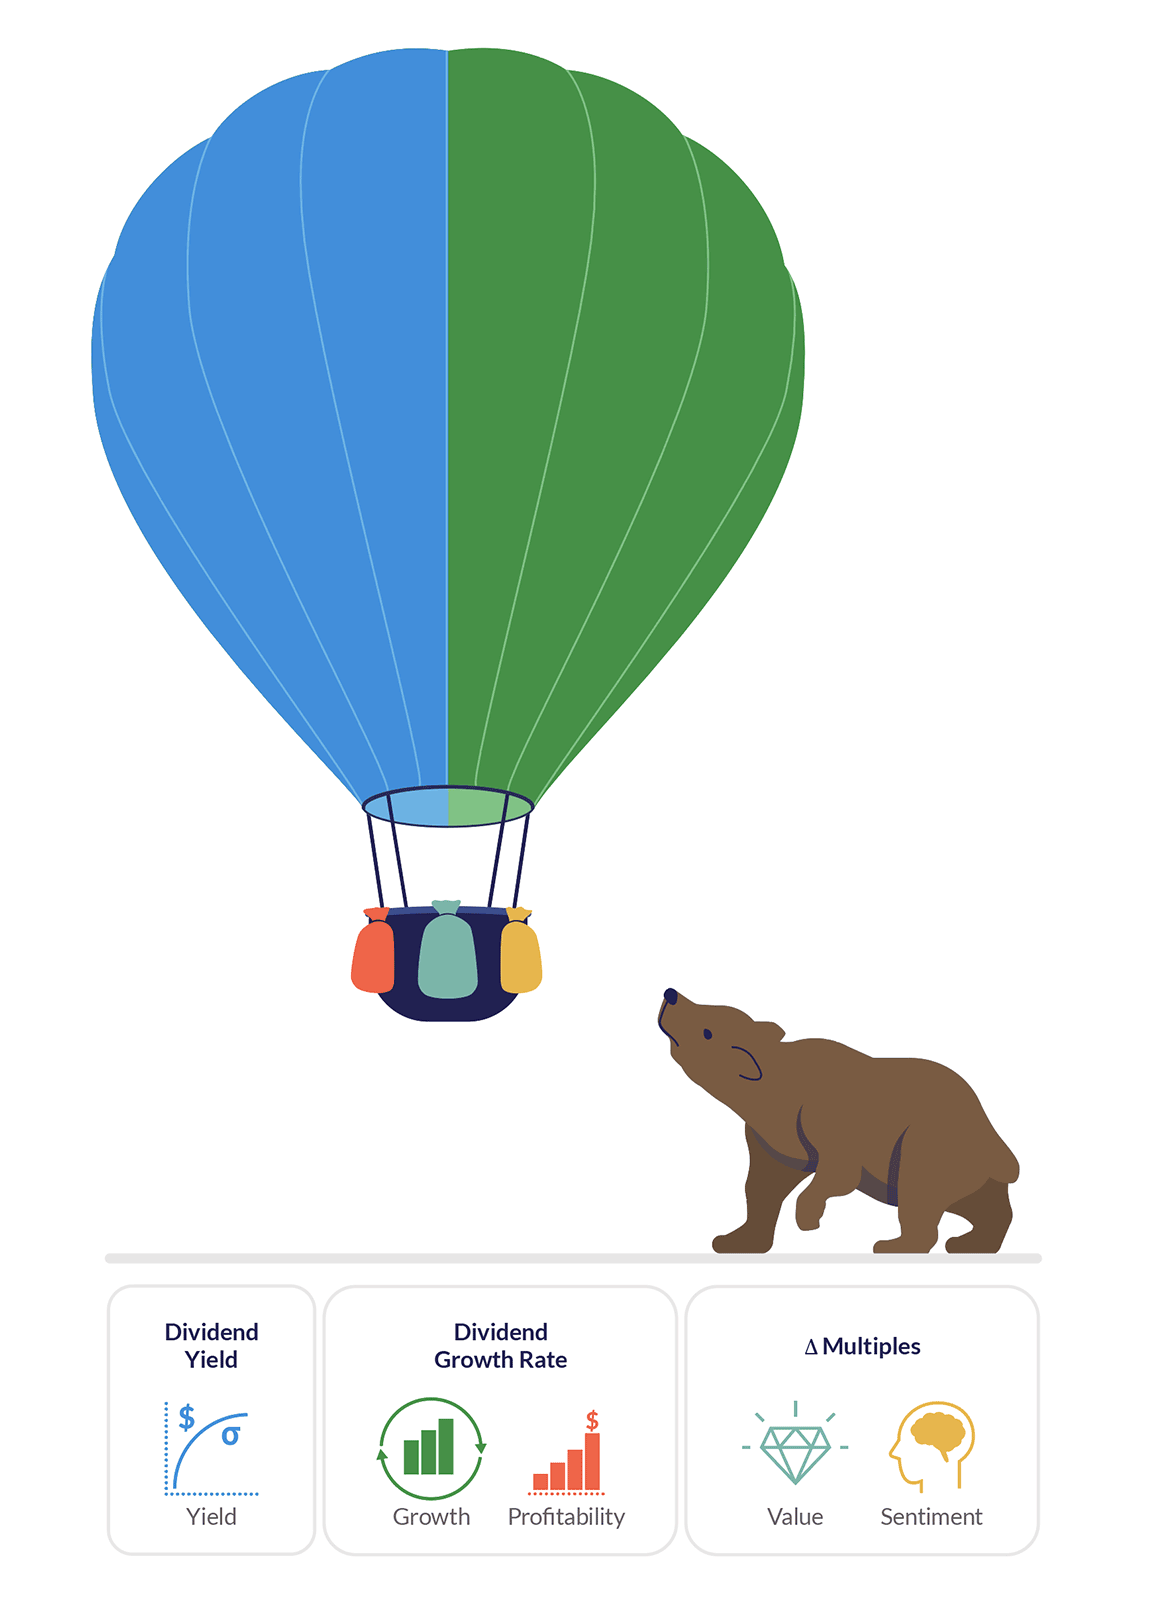 Illustration of grizzly bear looking up at hot air balloon